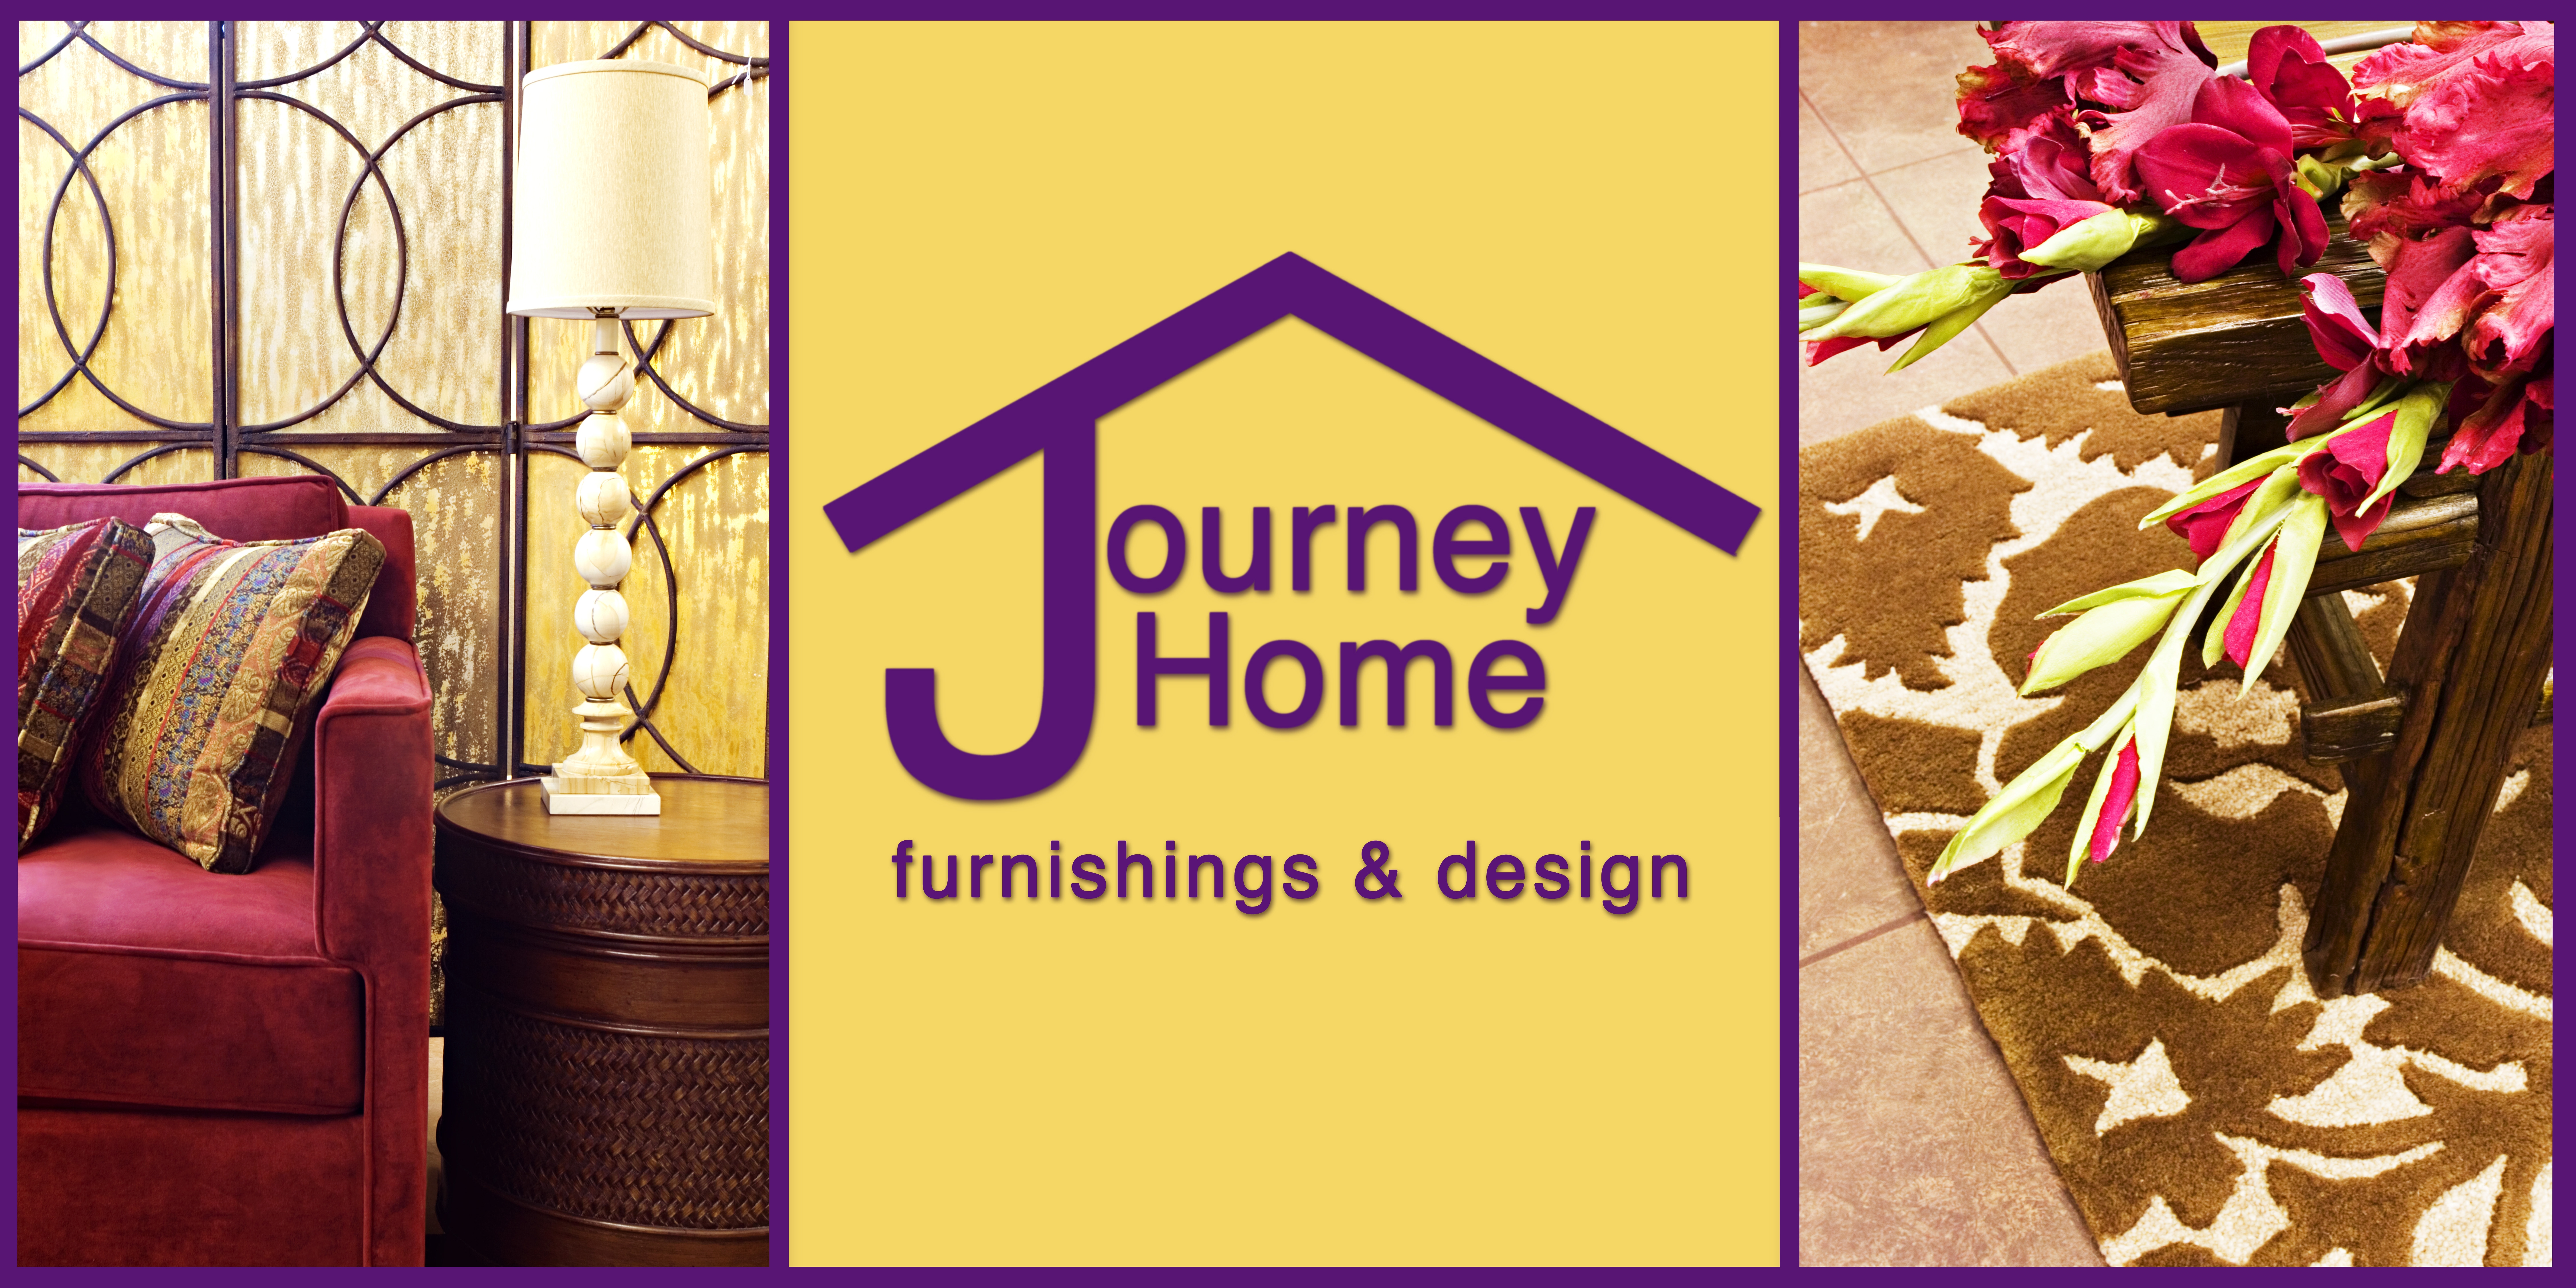 left frame: couch, lamp, and side table. center: large purple and yellow logo banner; house with words journey home; right frame: rug and bench with flowers